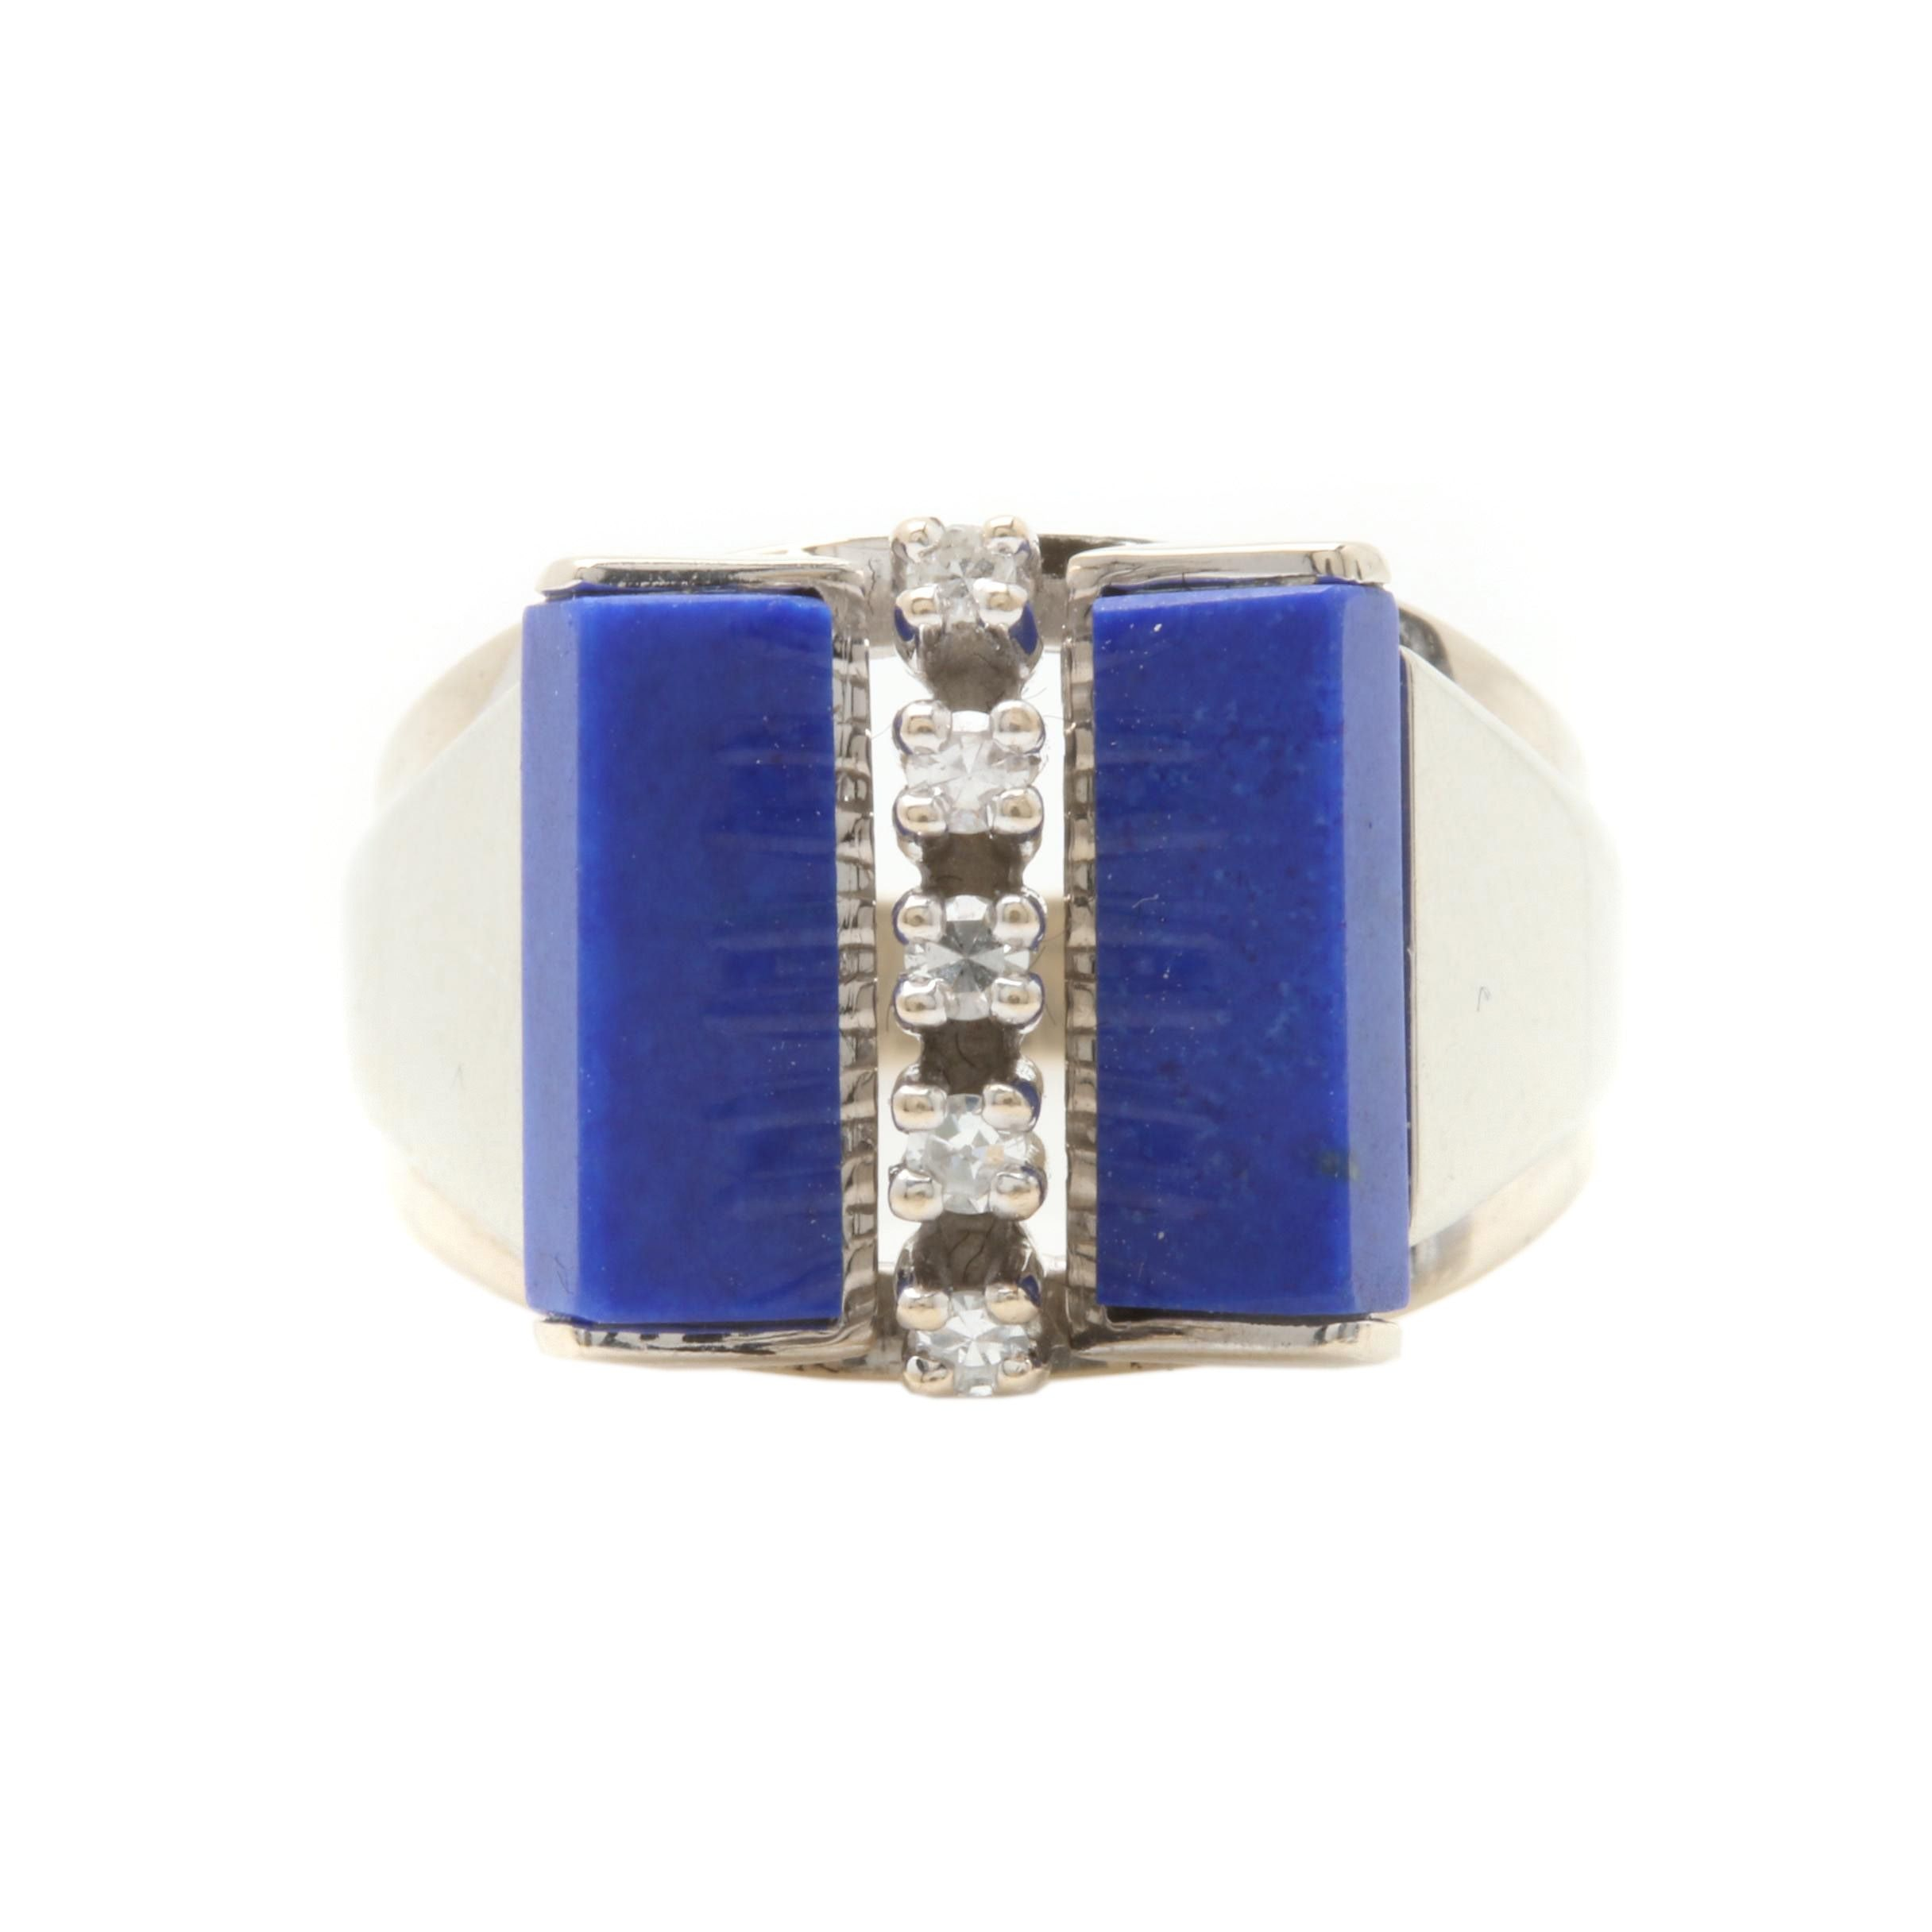 14K White Gold Diamond and Synthetic Lapis Lazuli Ring